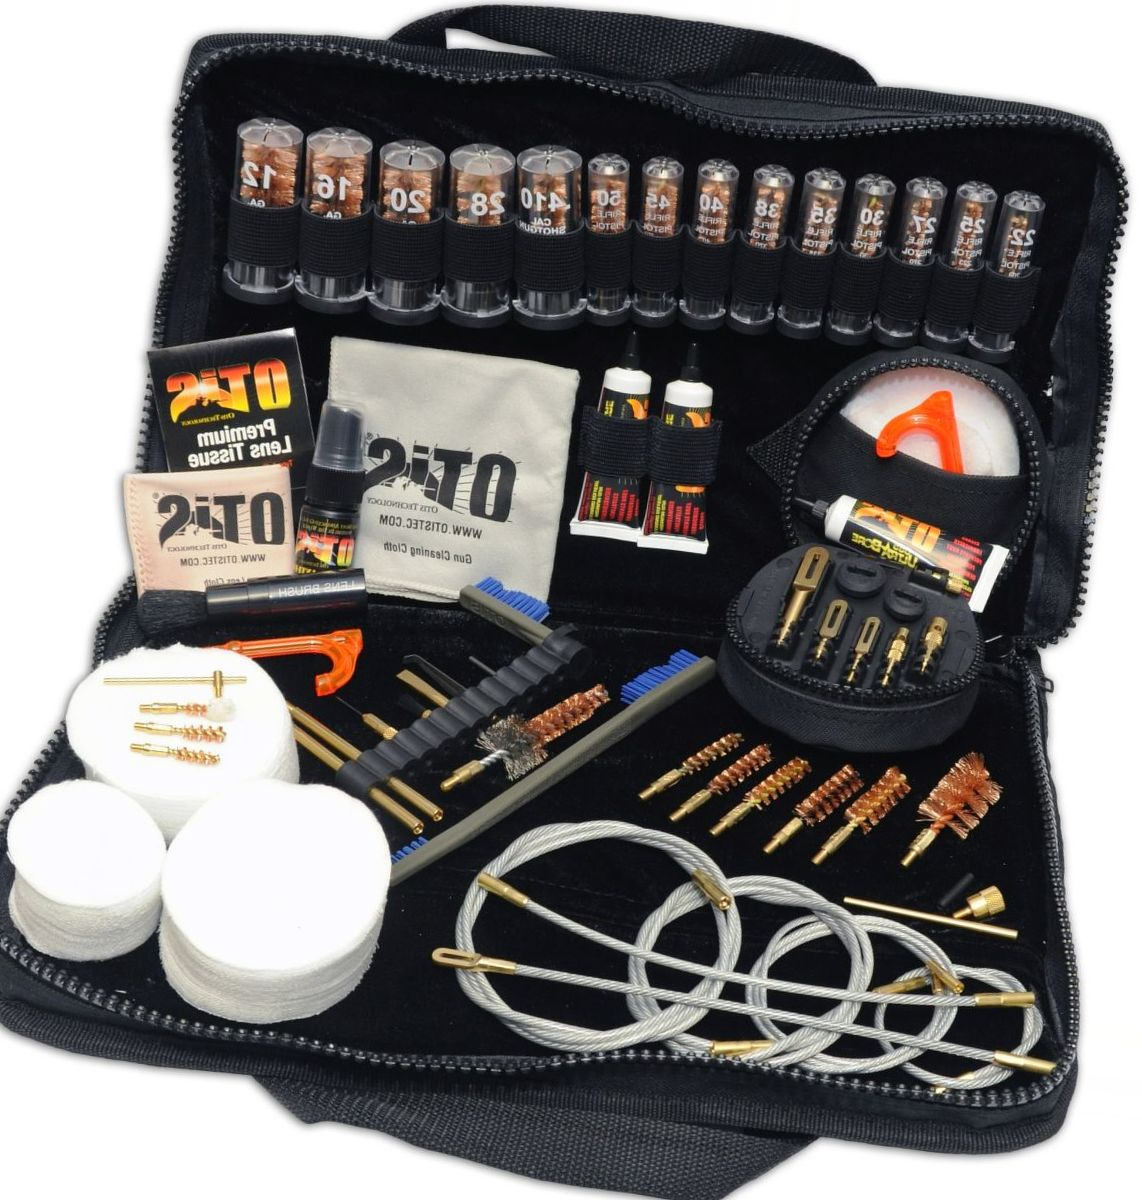 The Otis Elite Gun Cleaning Kit